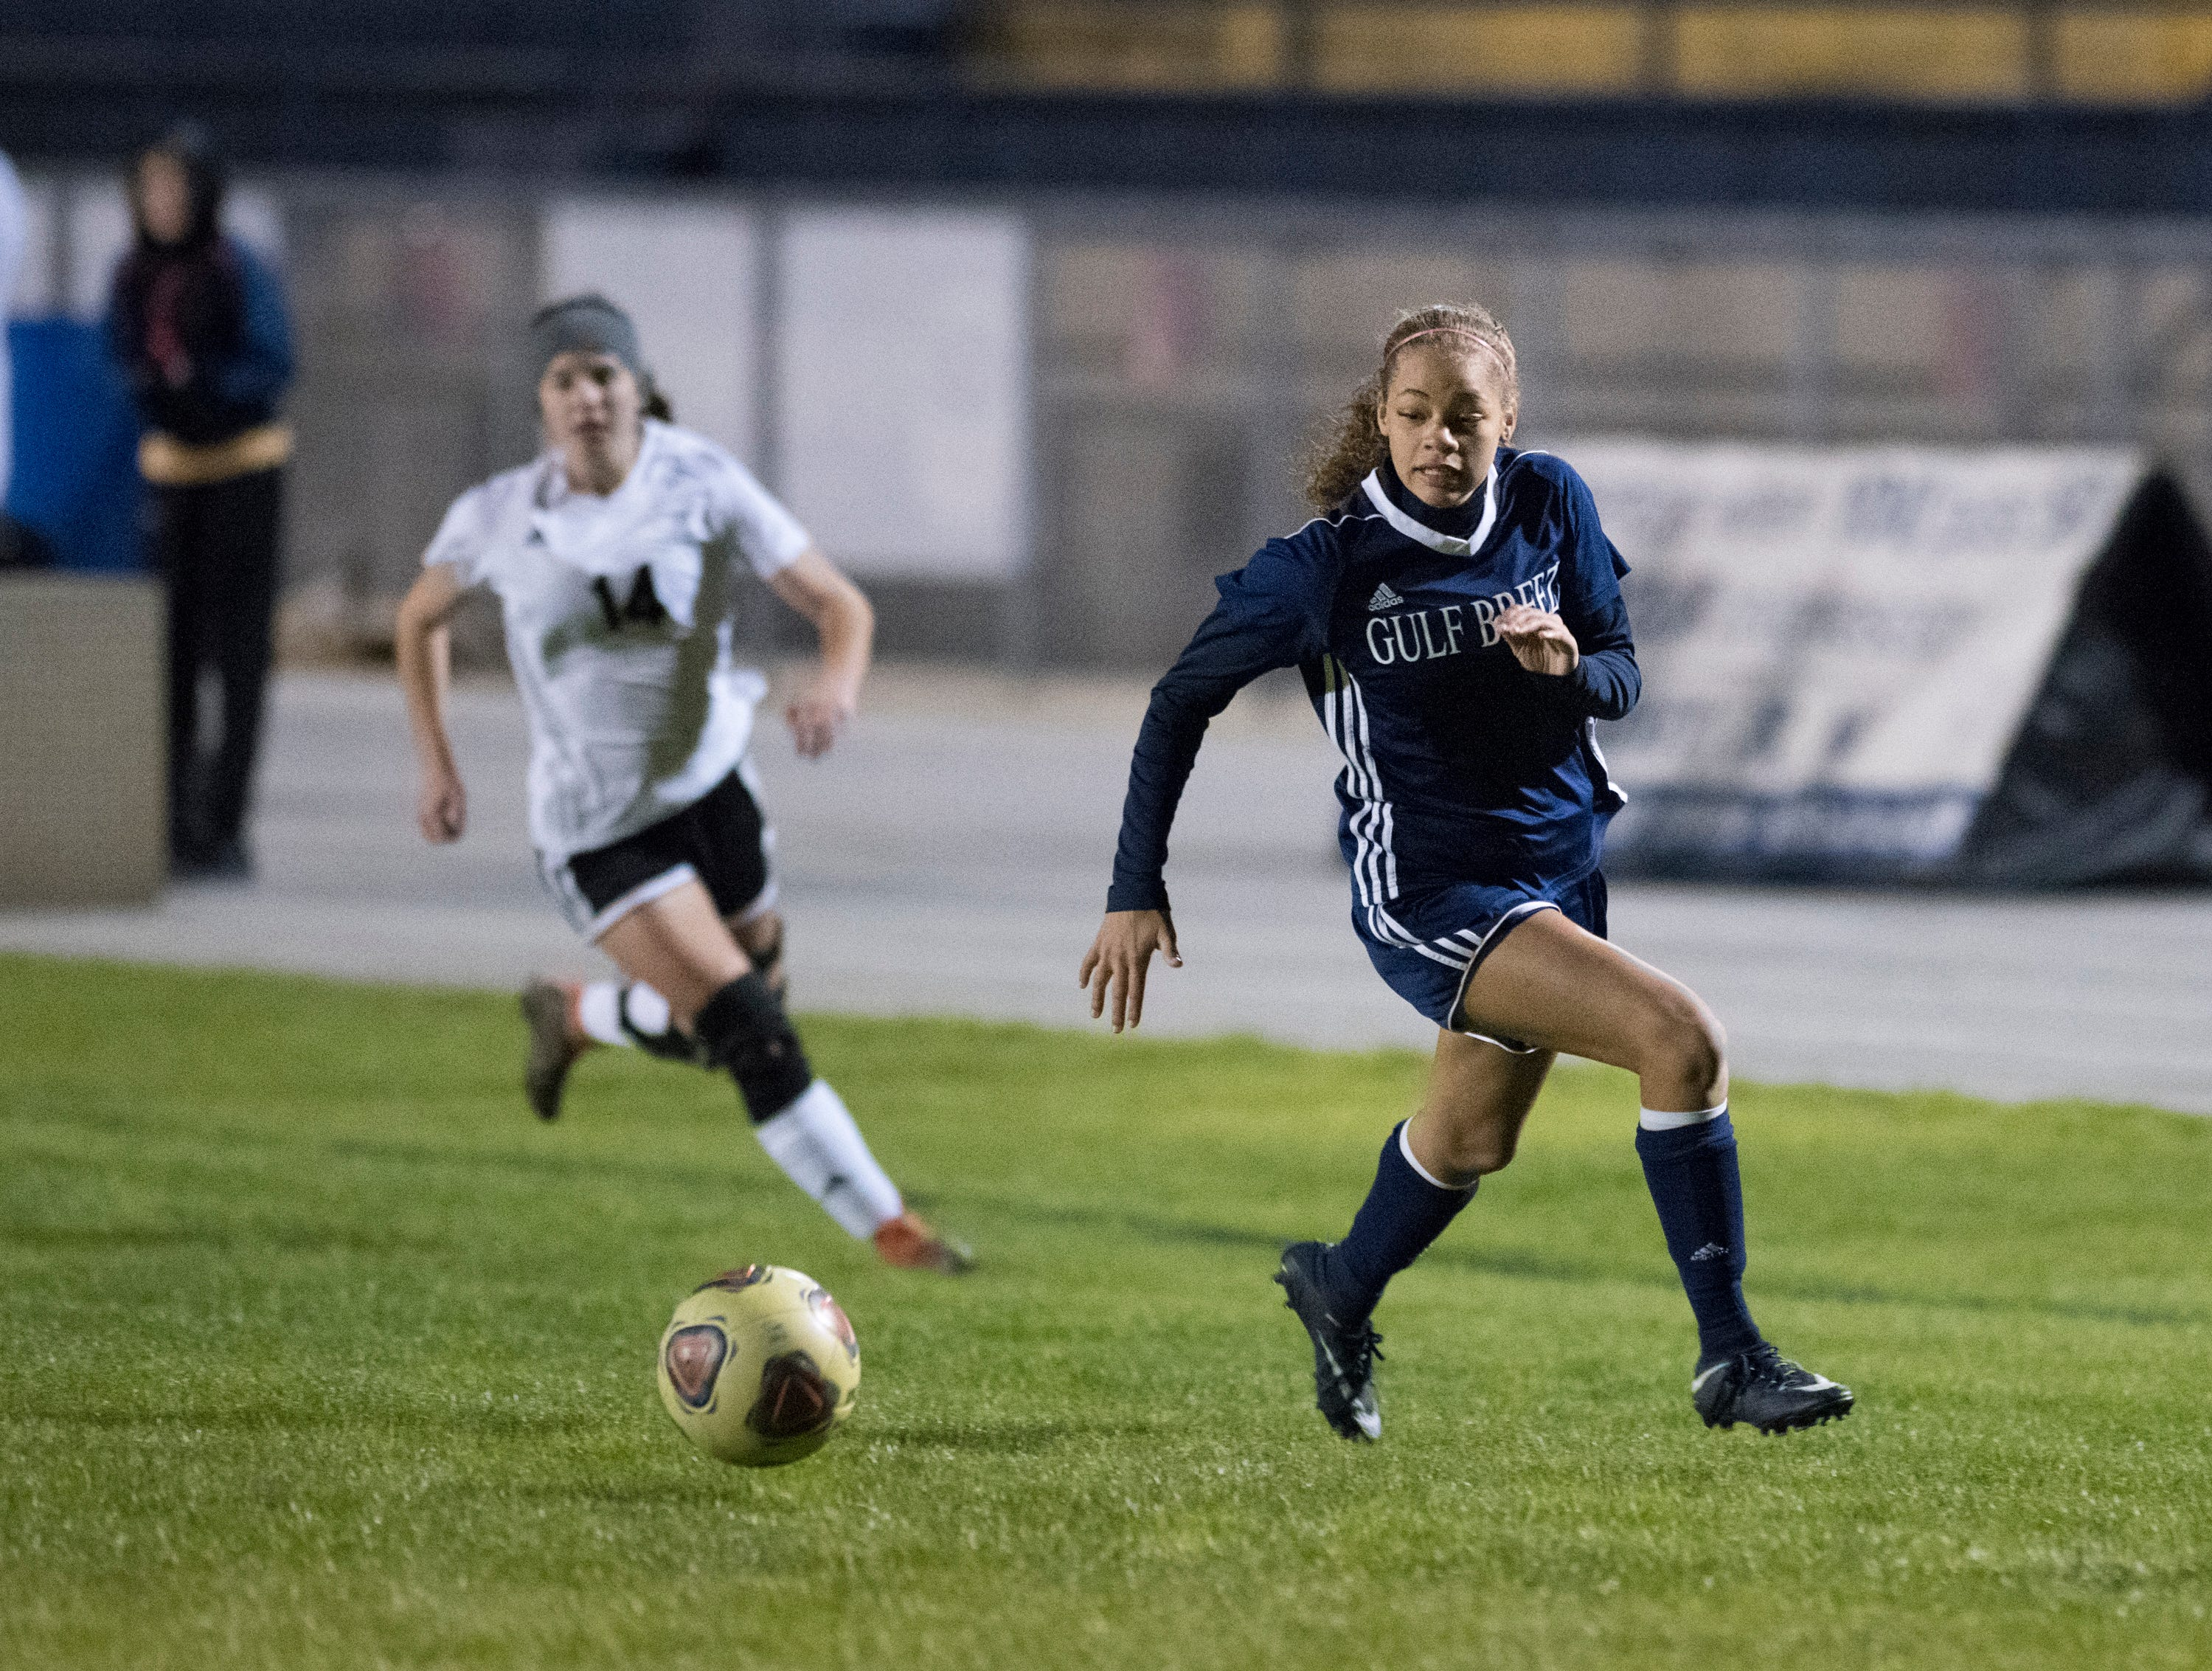 Aiyannah Robinson (14) races to the ball during the Niceville vs Gulf Breeze soccer game at Gulf Breeze High School on Thursday, January 10, 2019.